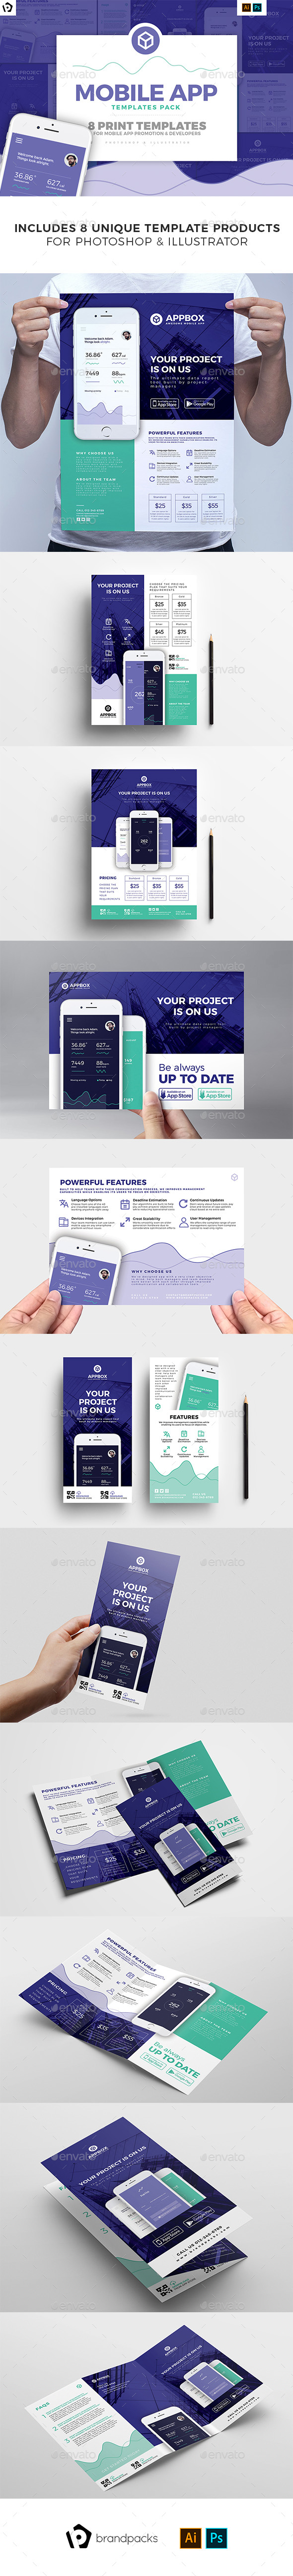 Mobile App Templates Bundle - Corporate Flyers